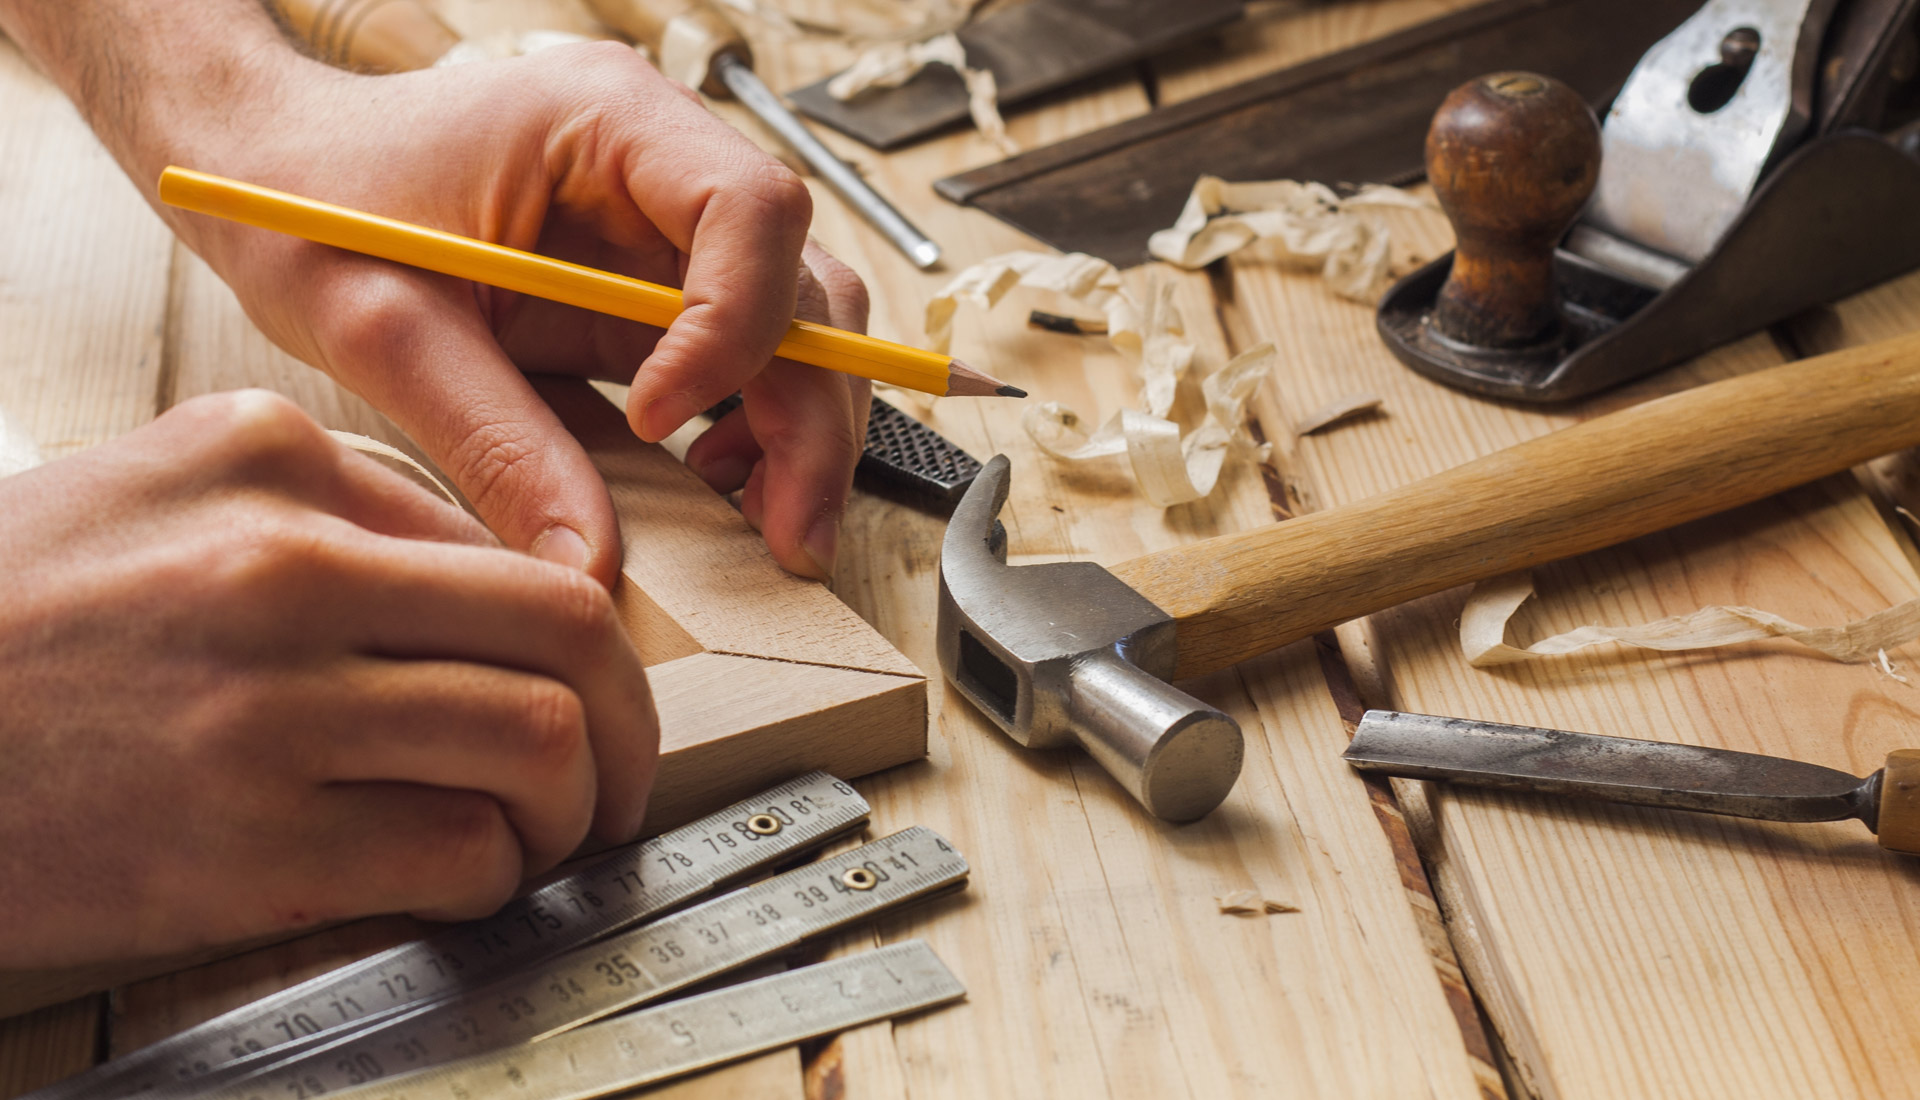 Furniture Repair Near Me Services - Checklist And Free Quotes in 10